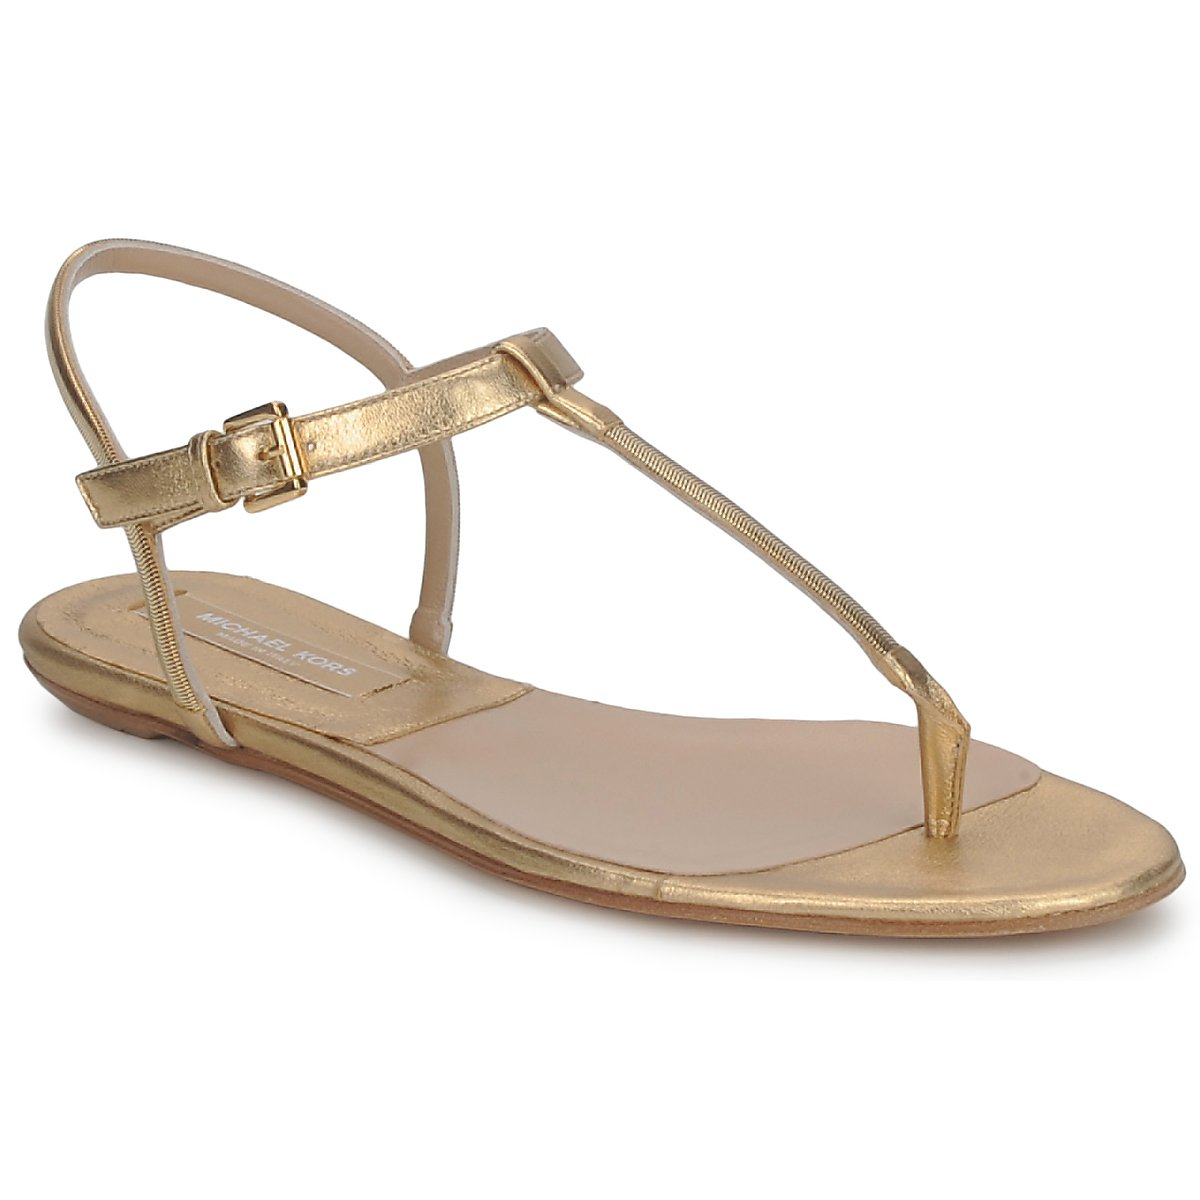 Sandals Michael Kors MK18017 GOLD